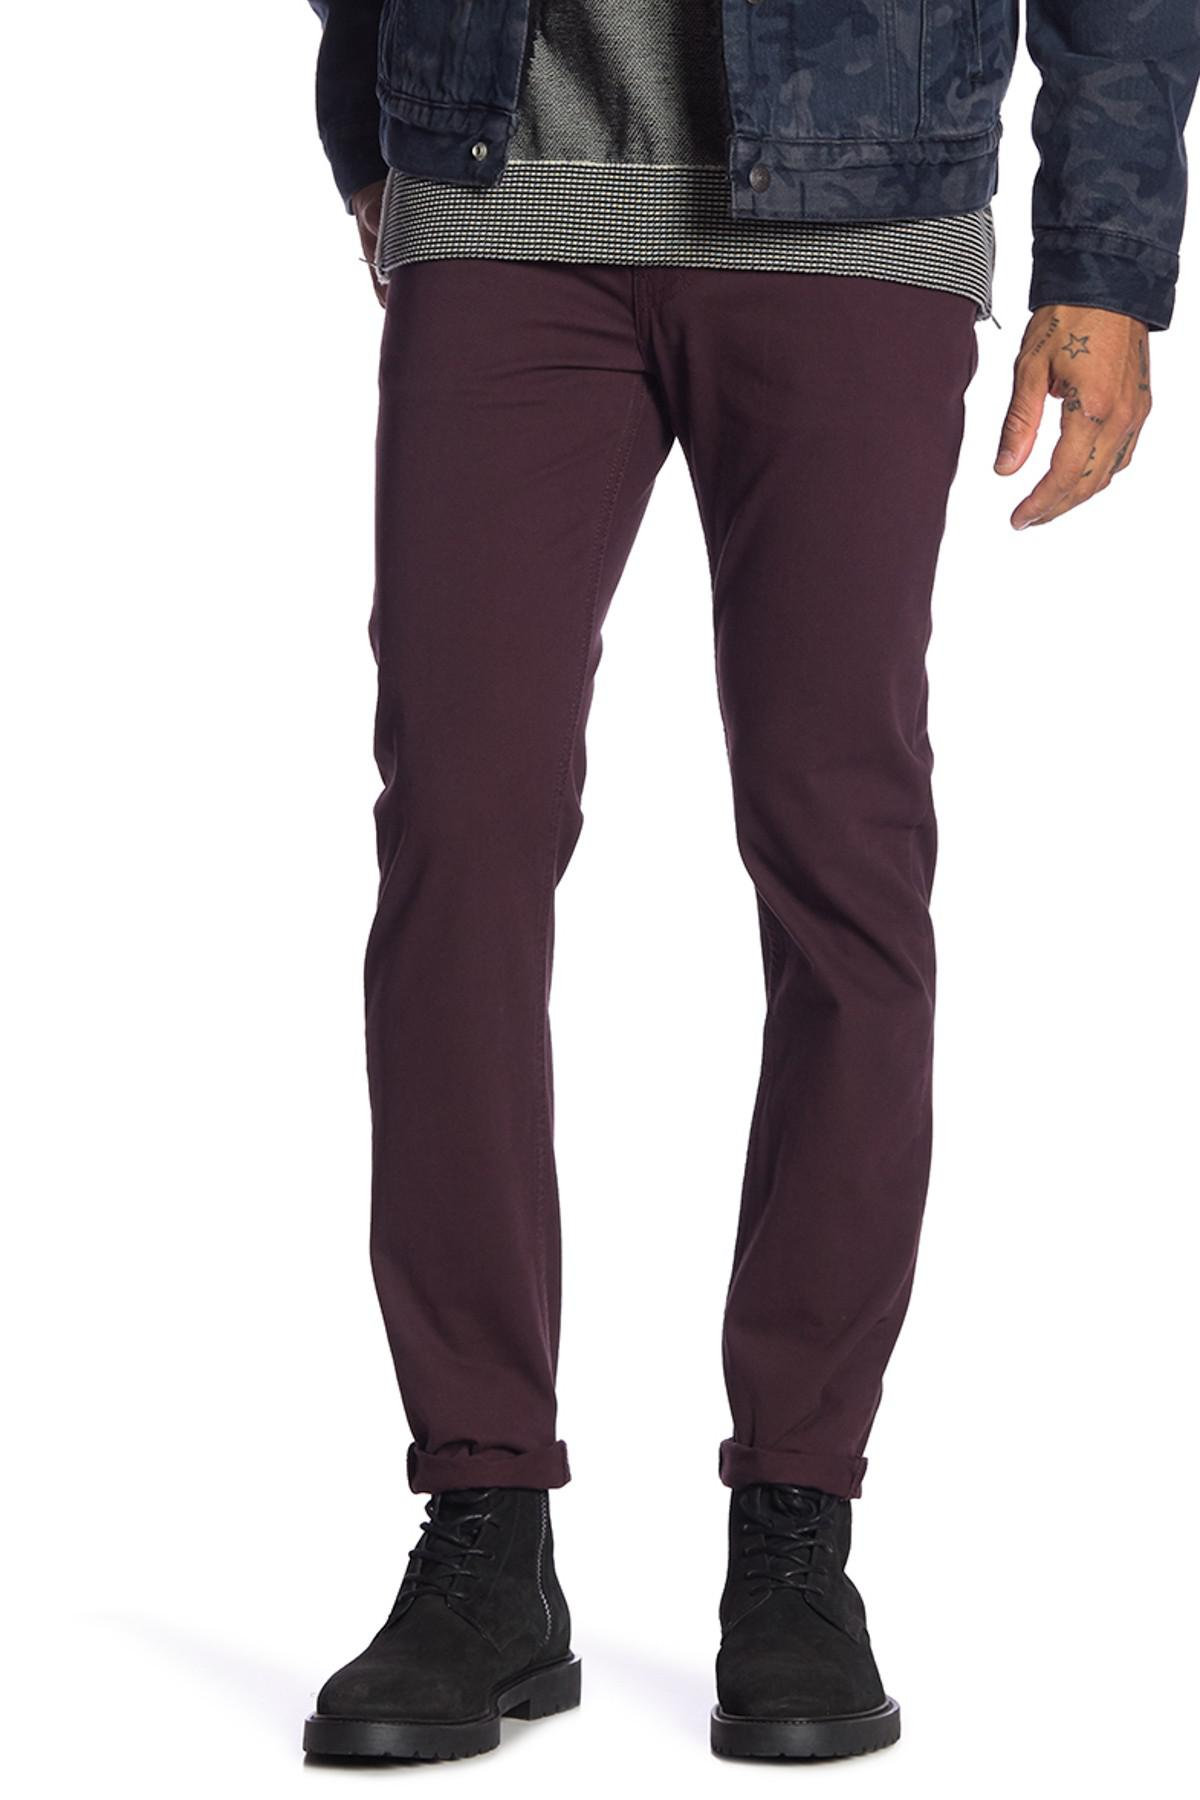 bc1724b56c0 Levi's 512 Bayberry Slim Tapered Fit Jeans - 30-36